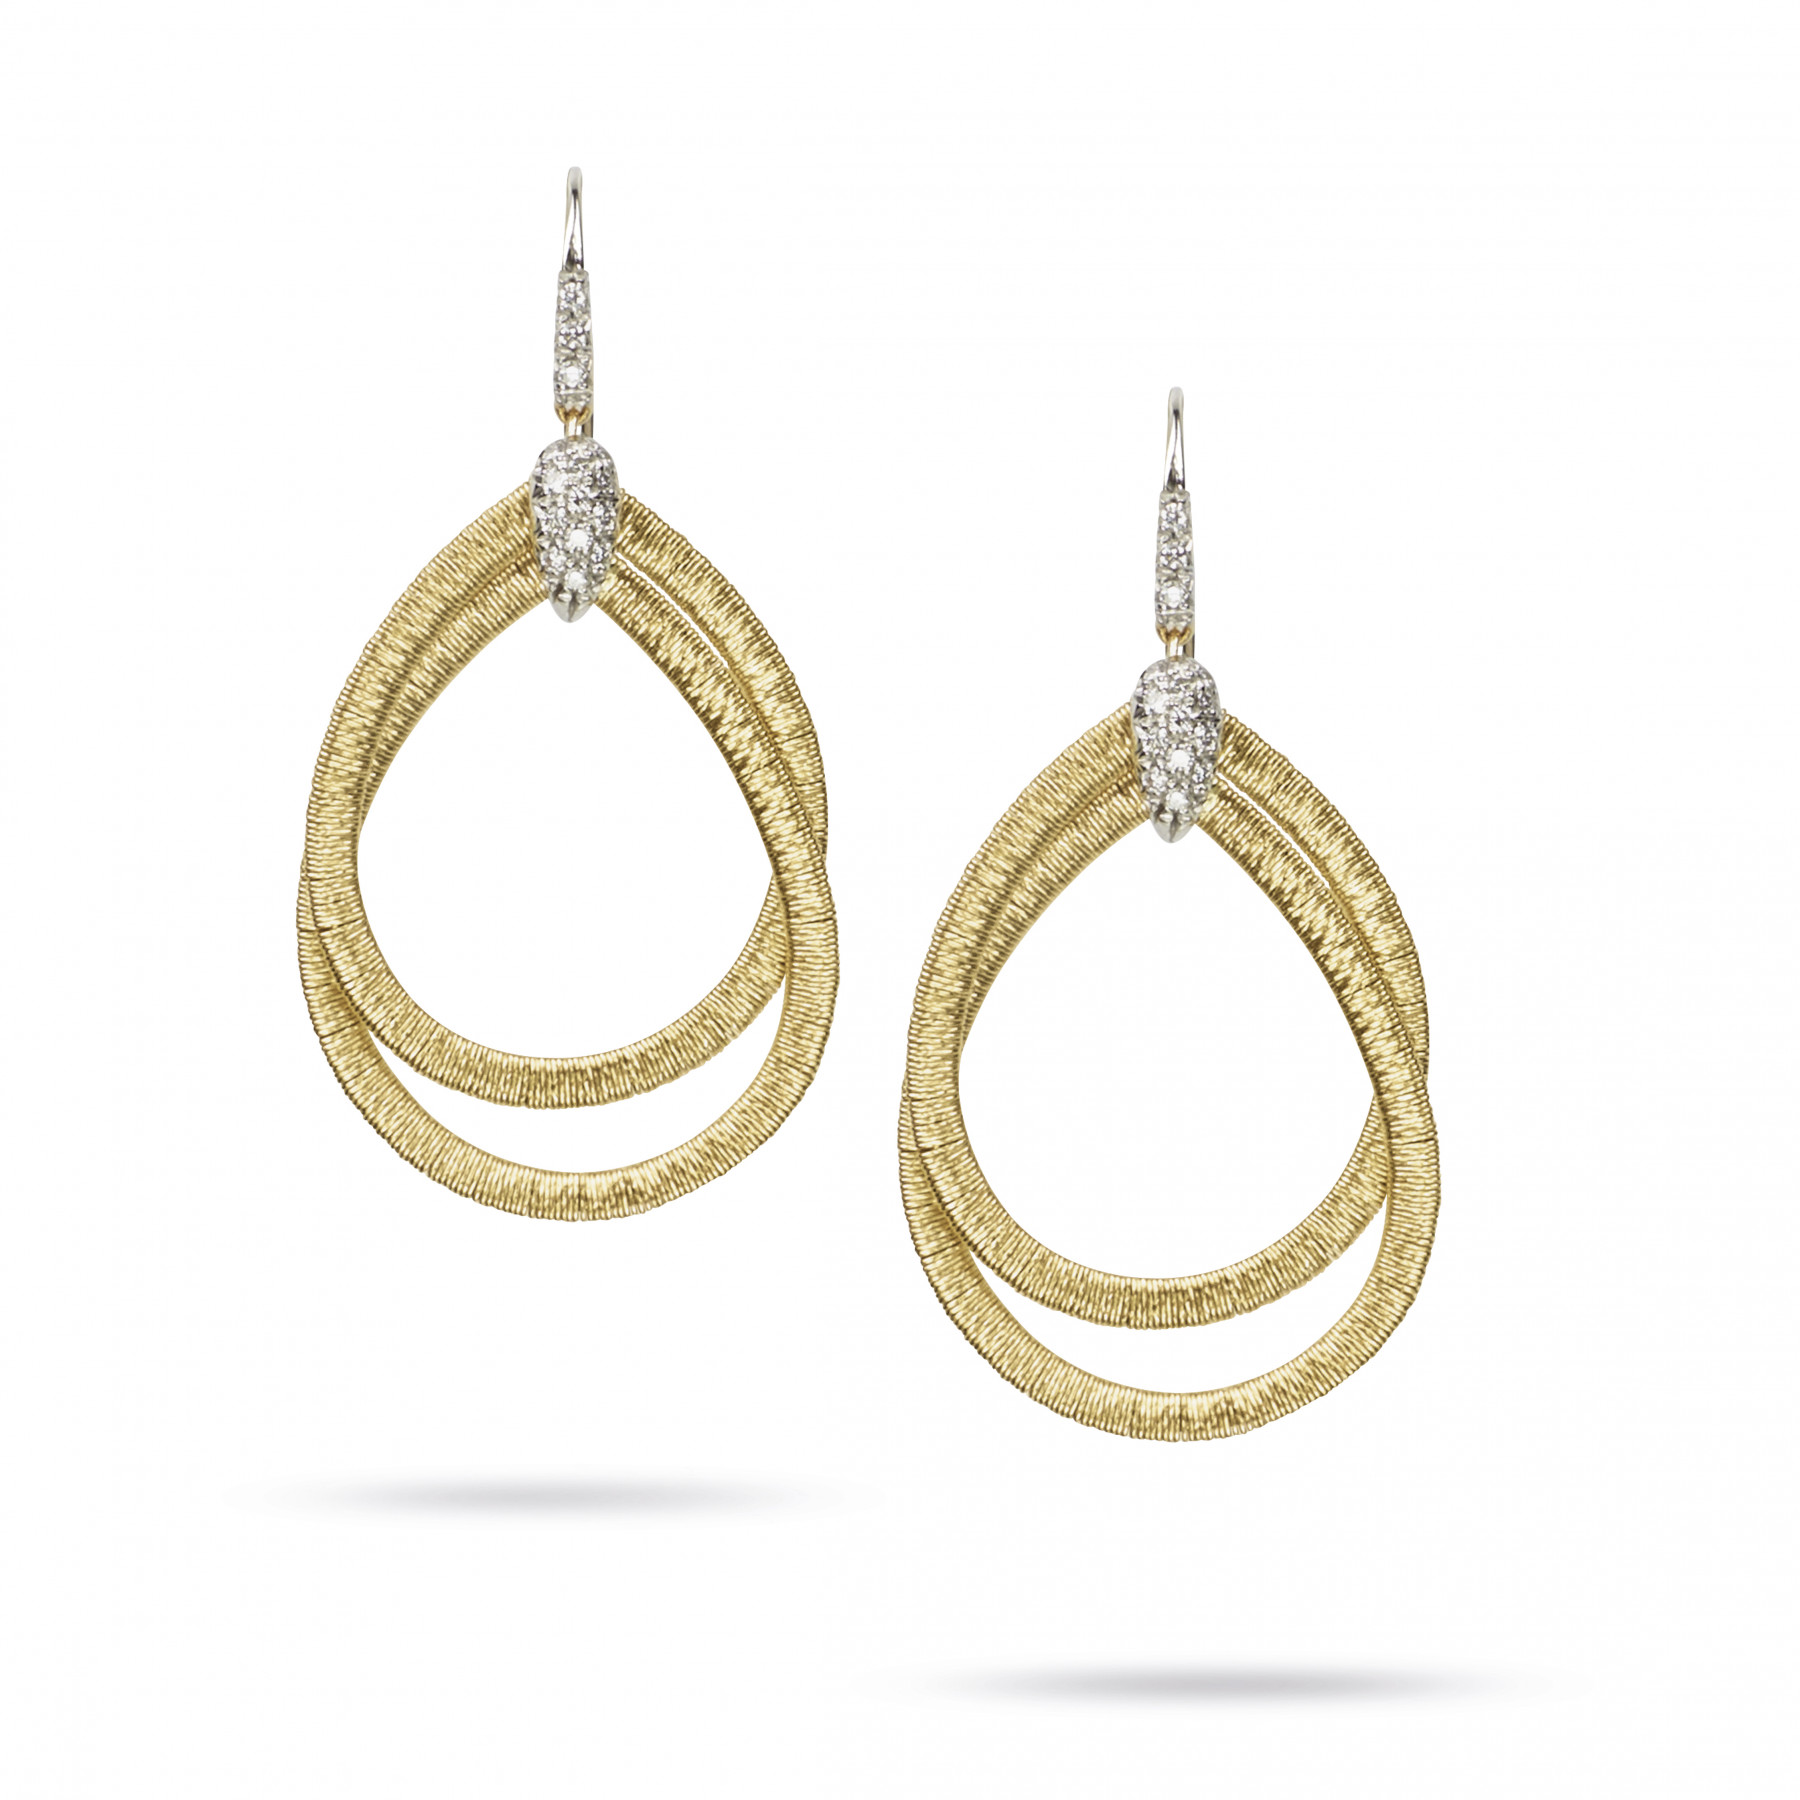 Marco Bicego Il Cairo 18kt Yellow Gold Double Wire Diamond Hoop Earrings